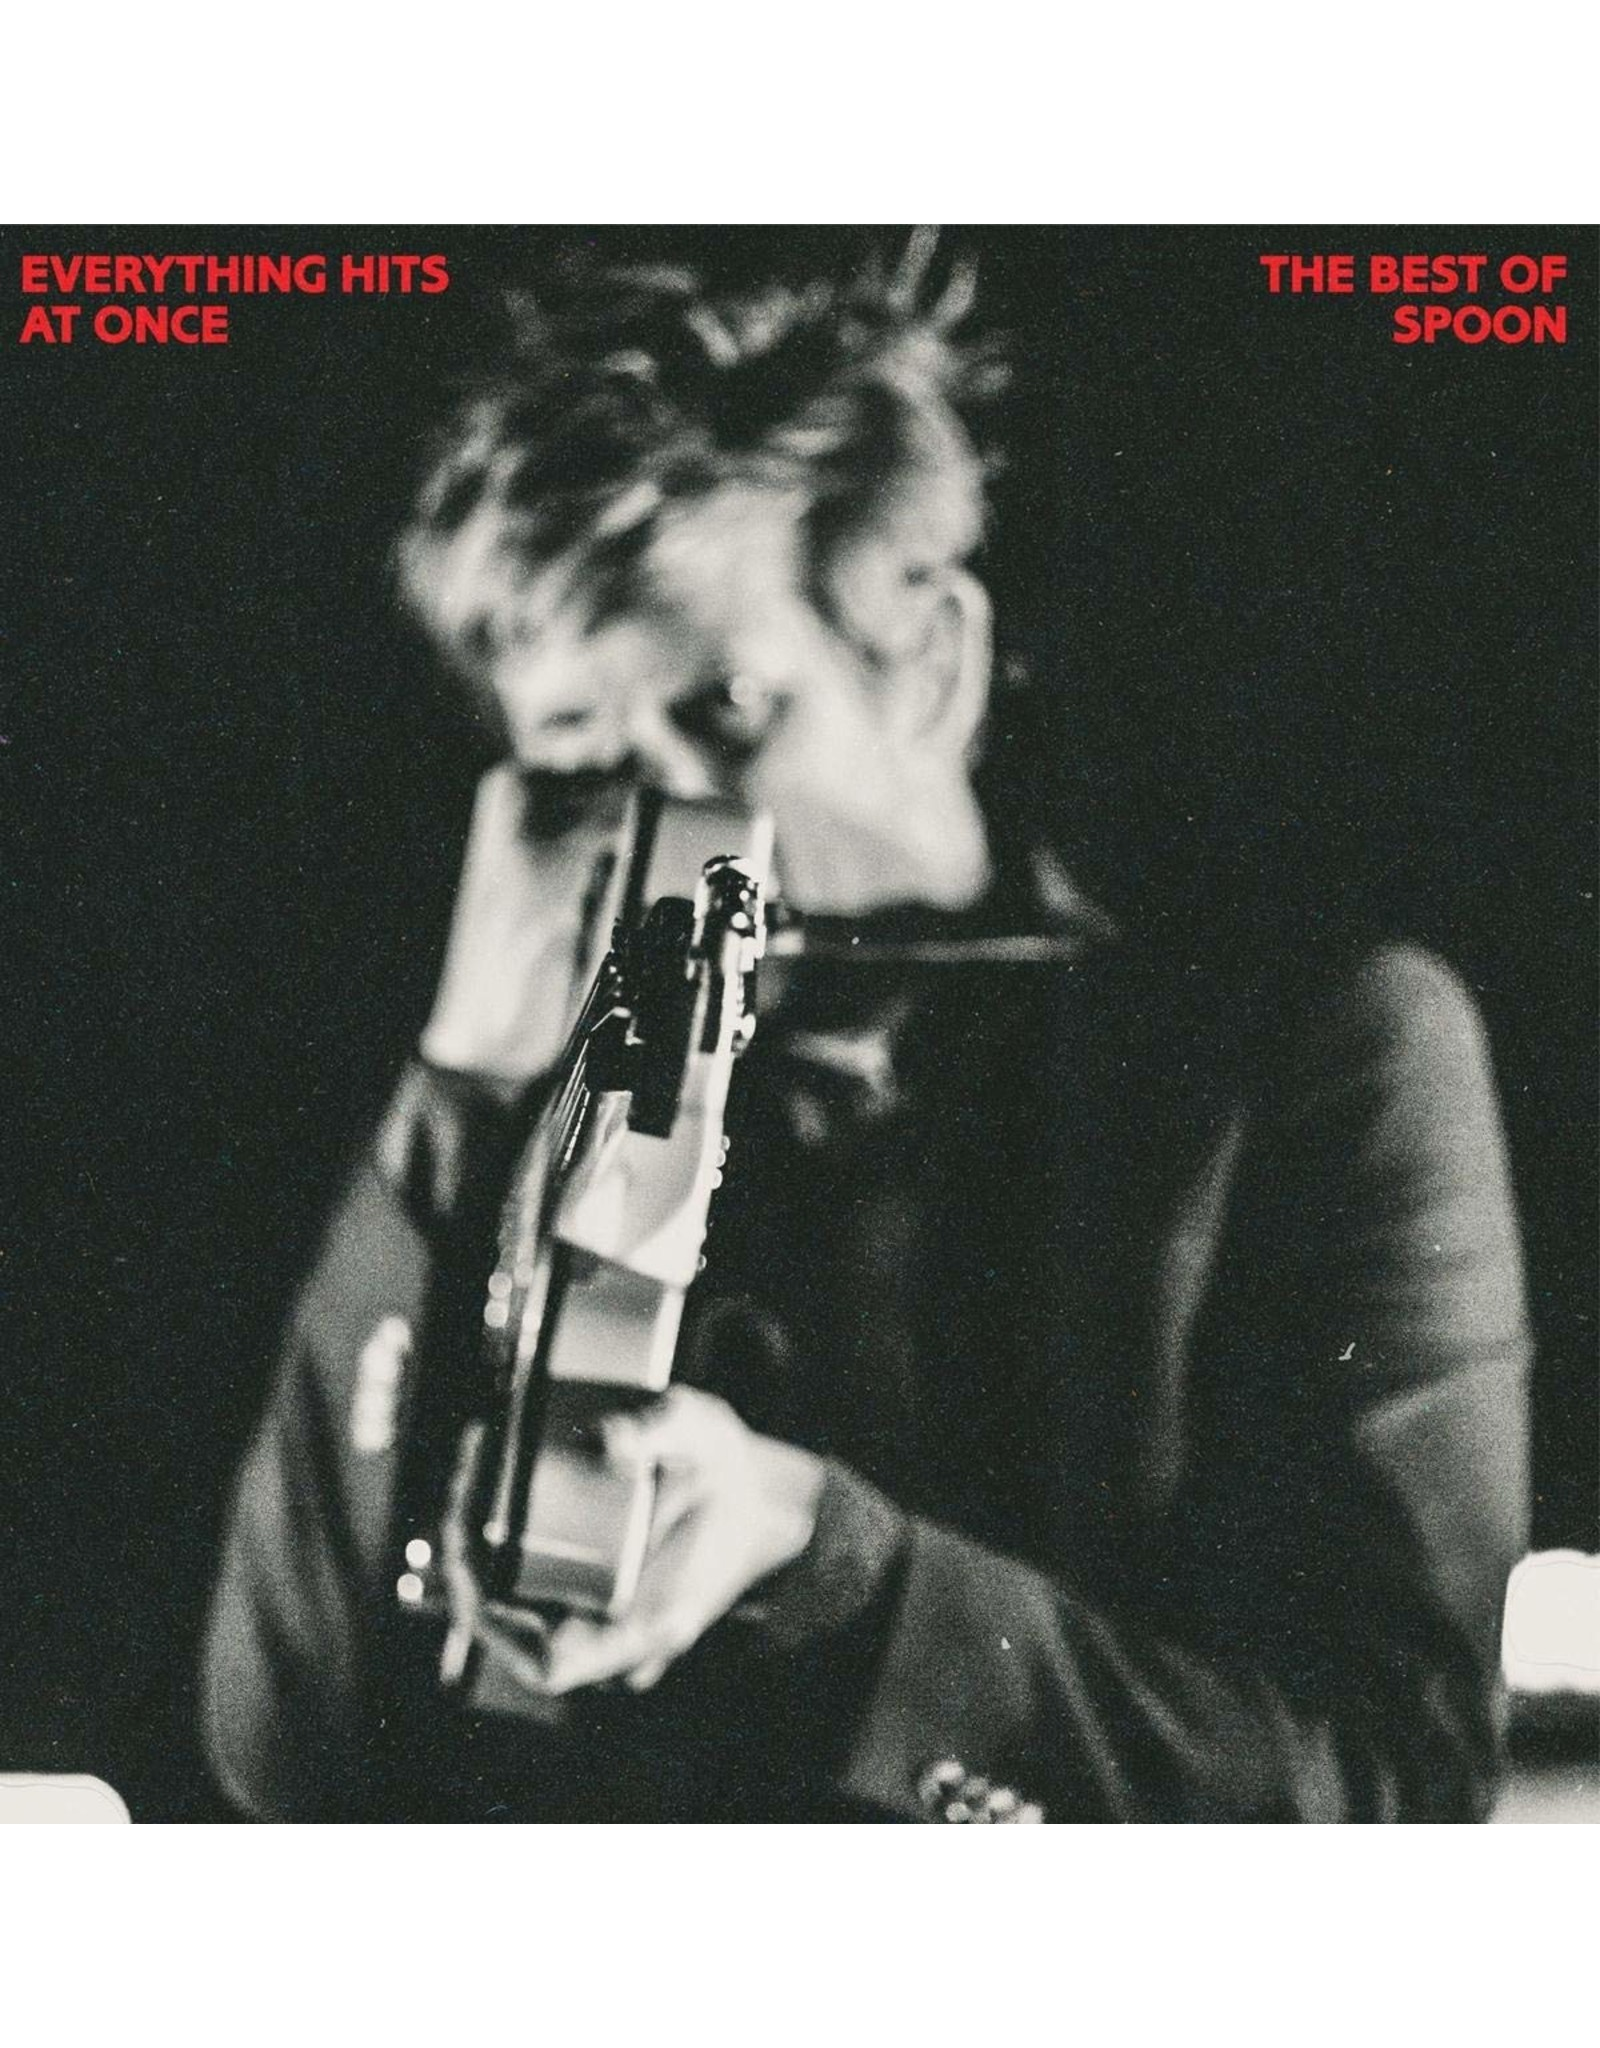 New Vinyl Spoon - Everything Hits At Once: The Best Of Spoon LP